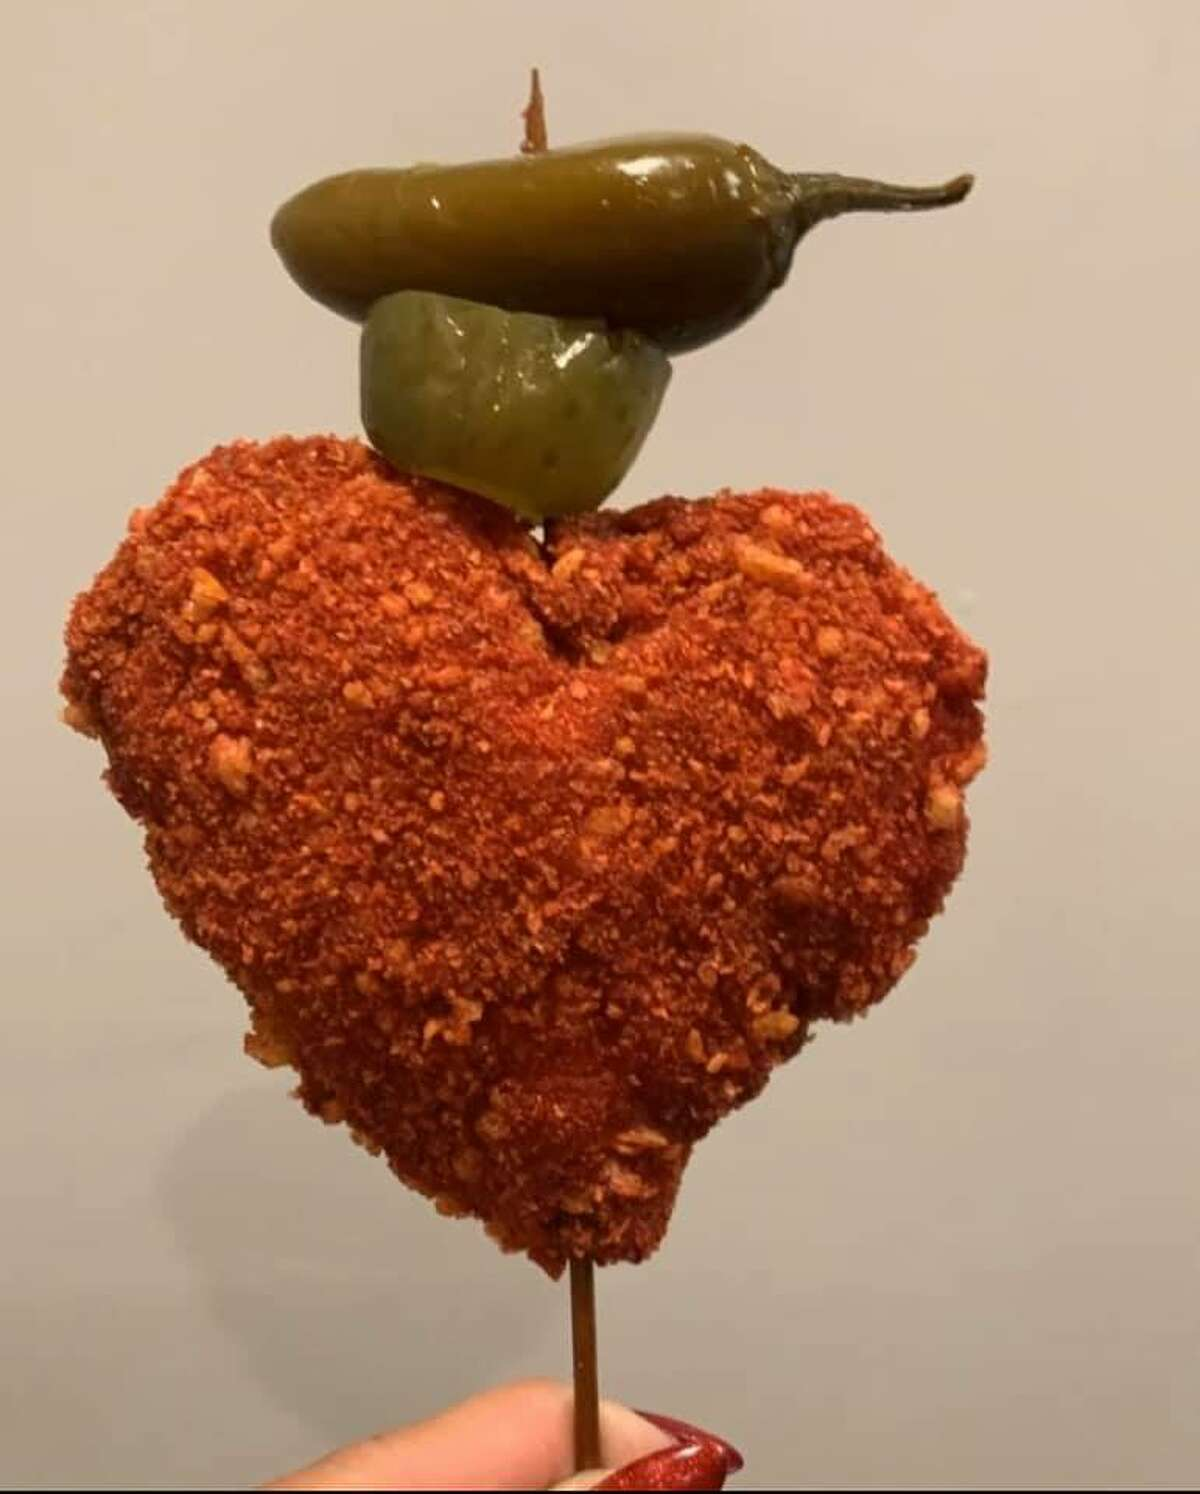 Guac It Like I Talk It is selling heart-shaped chicken-on-a-sticks ahead of Valentine's Day.